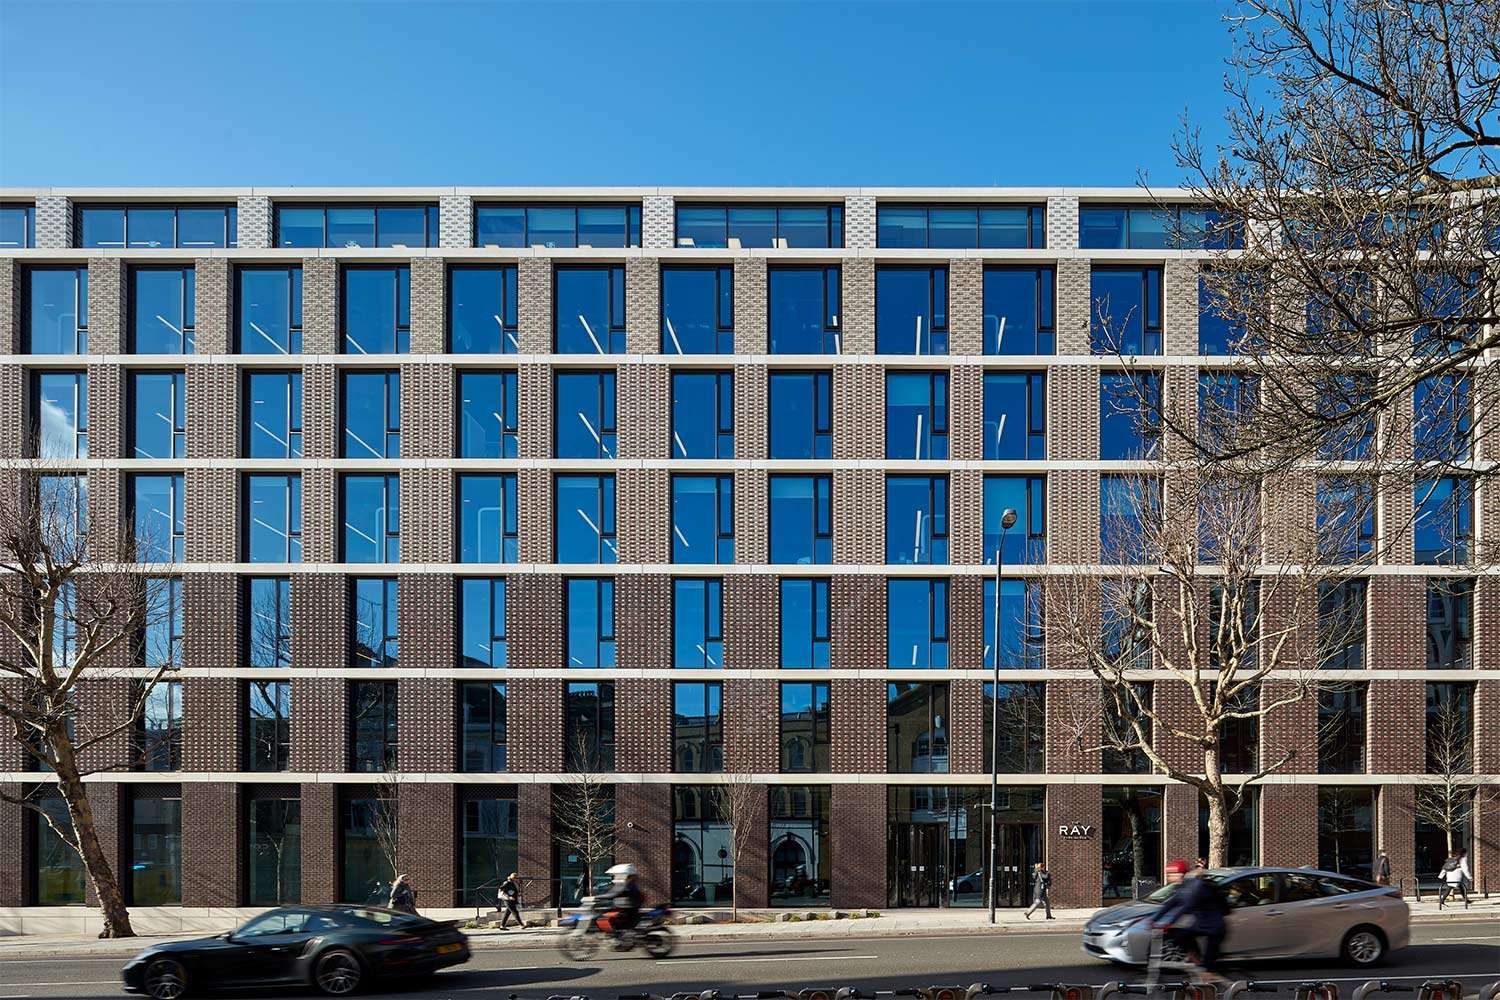 One of the projects Charis has recently worked on is The Ray. Facades design helped reinvigorate the old site and provide new high quality office and commercial space. Image: Rob Parrish Photography